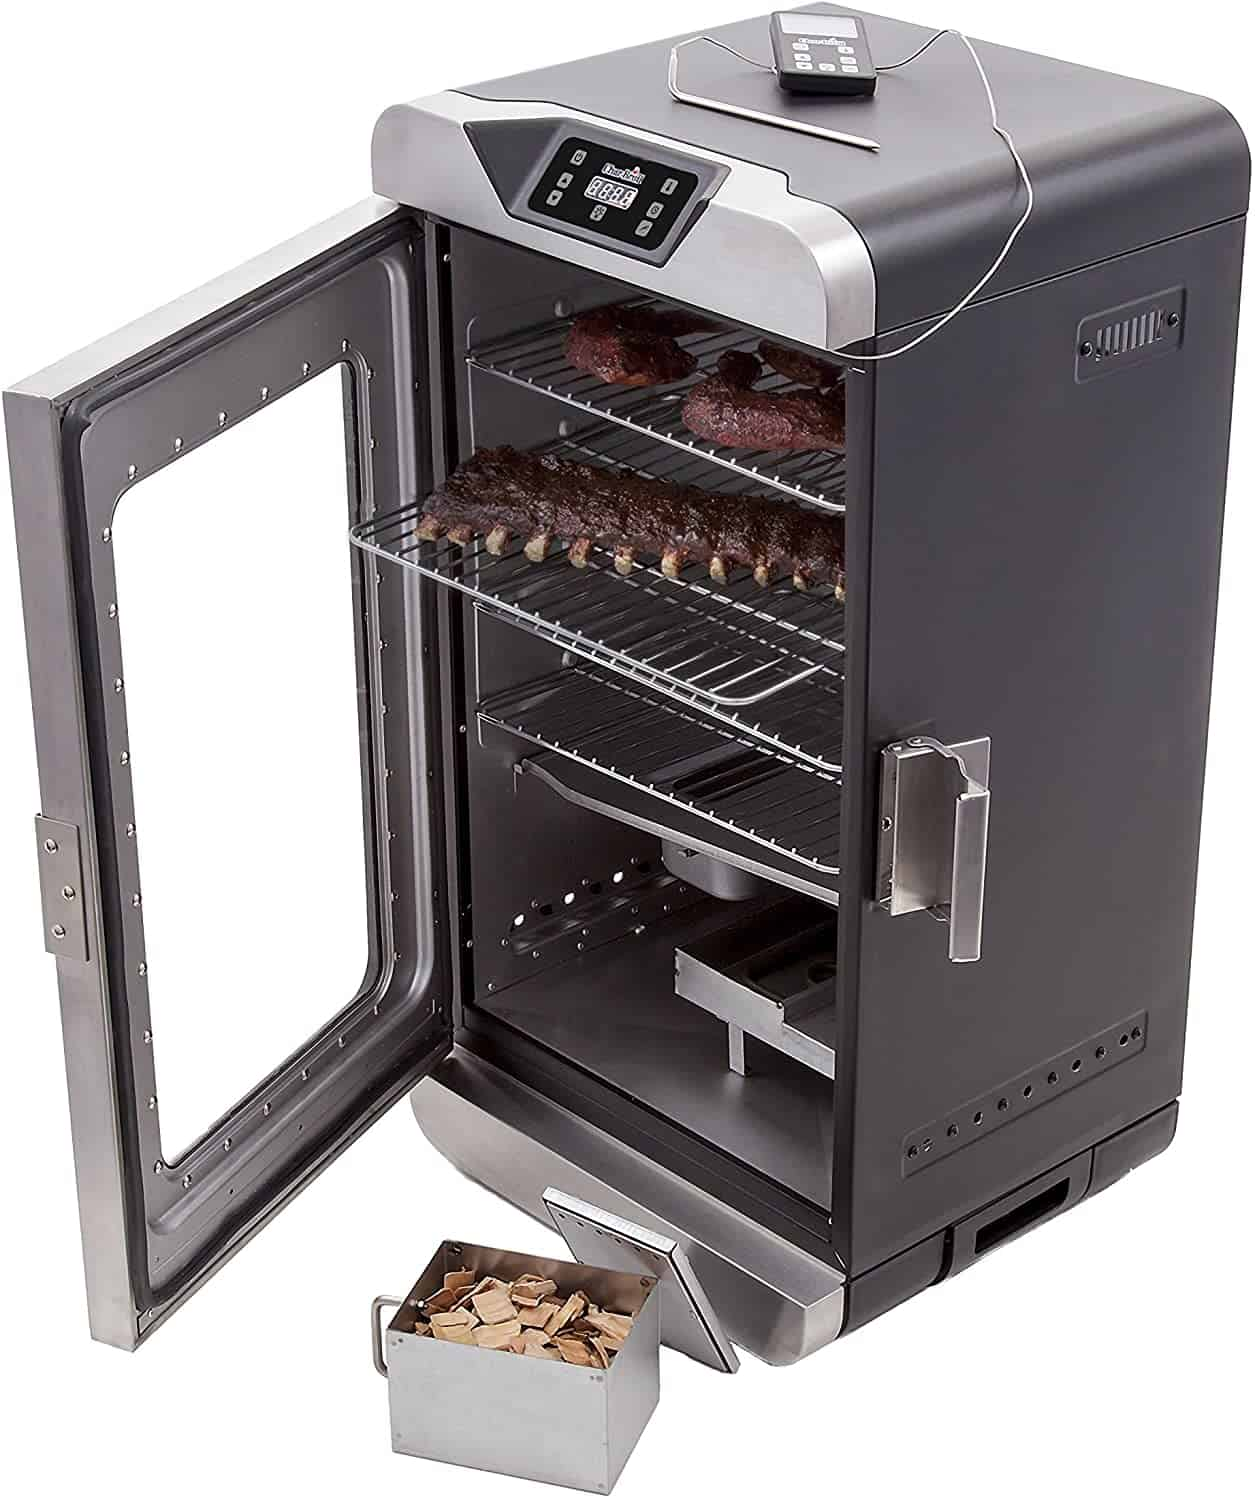 Best electric smoker for brisket & best with remote control- Char-Broil 17202004 Digital Deluxe